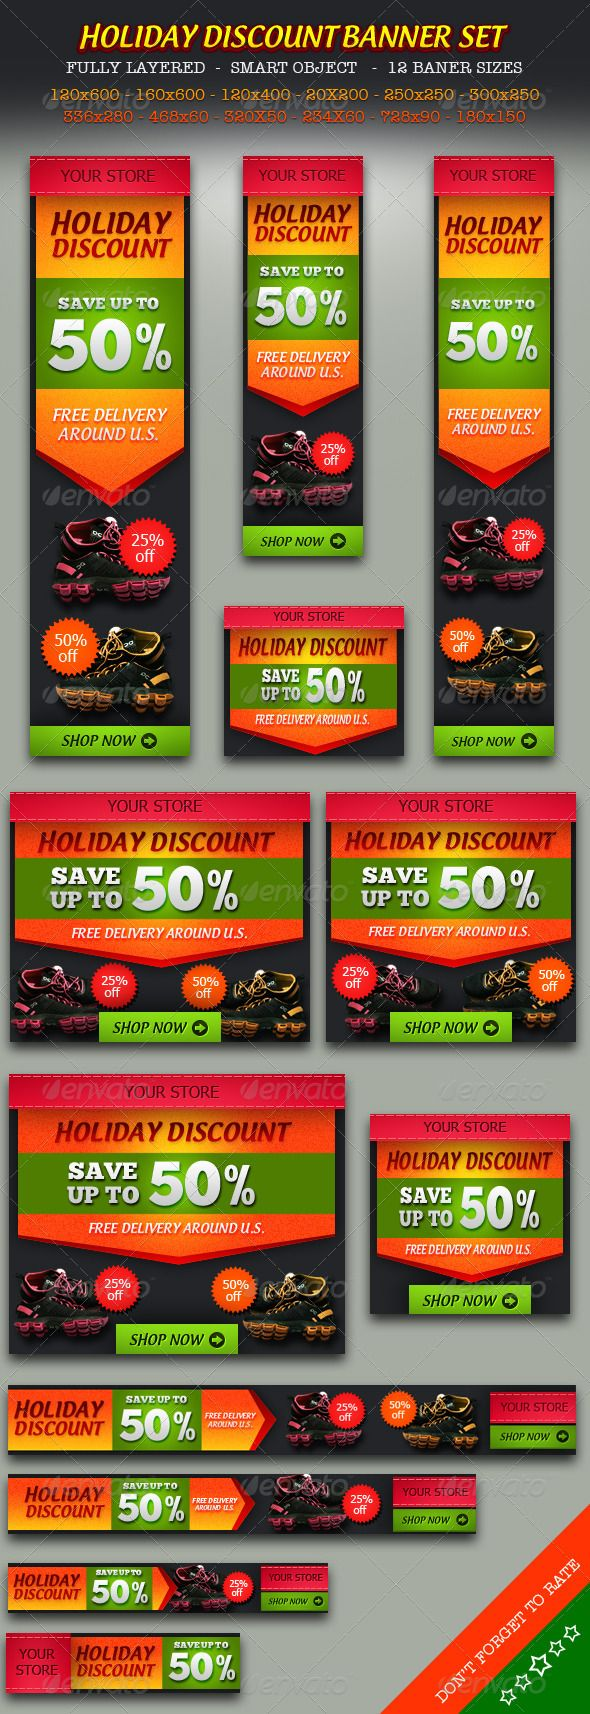 Design of discount card - Holiday Discount Online Store Banner Ad Set